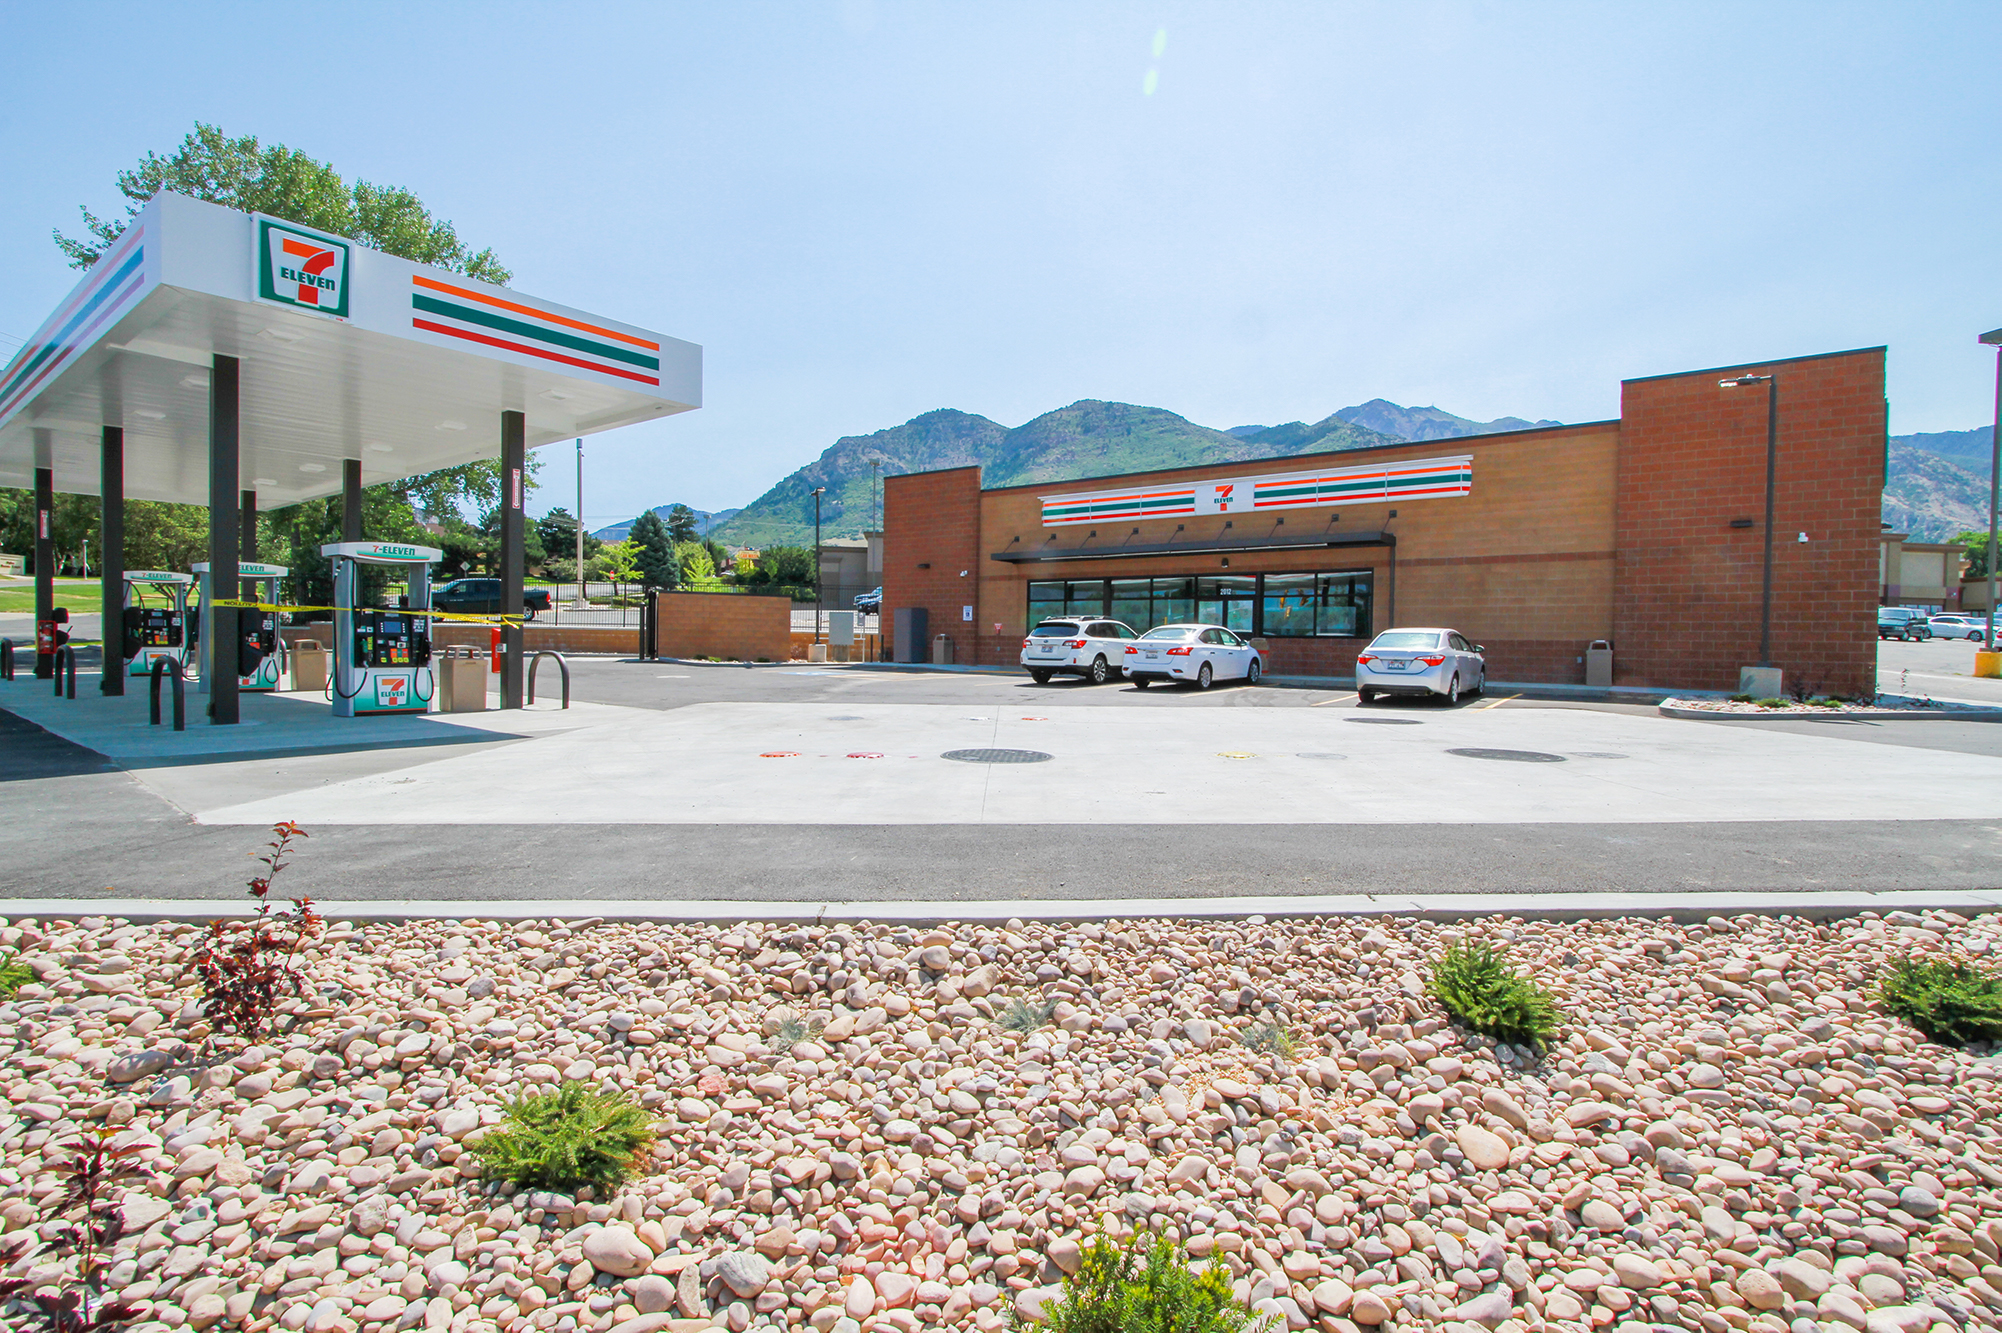 Mountain West Commercial closes on 14 new locations in 2020 for 7-Eleven with a projected 14 more in 2021